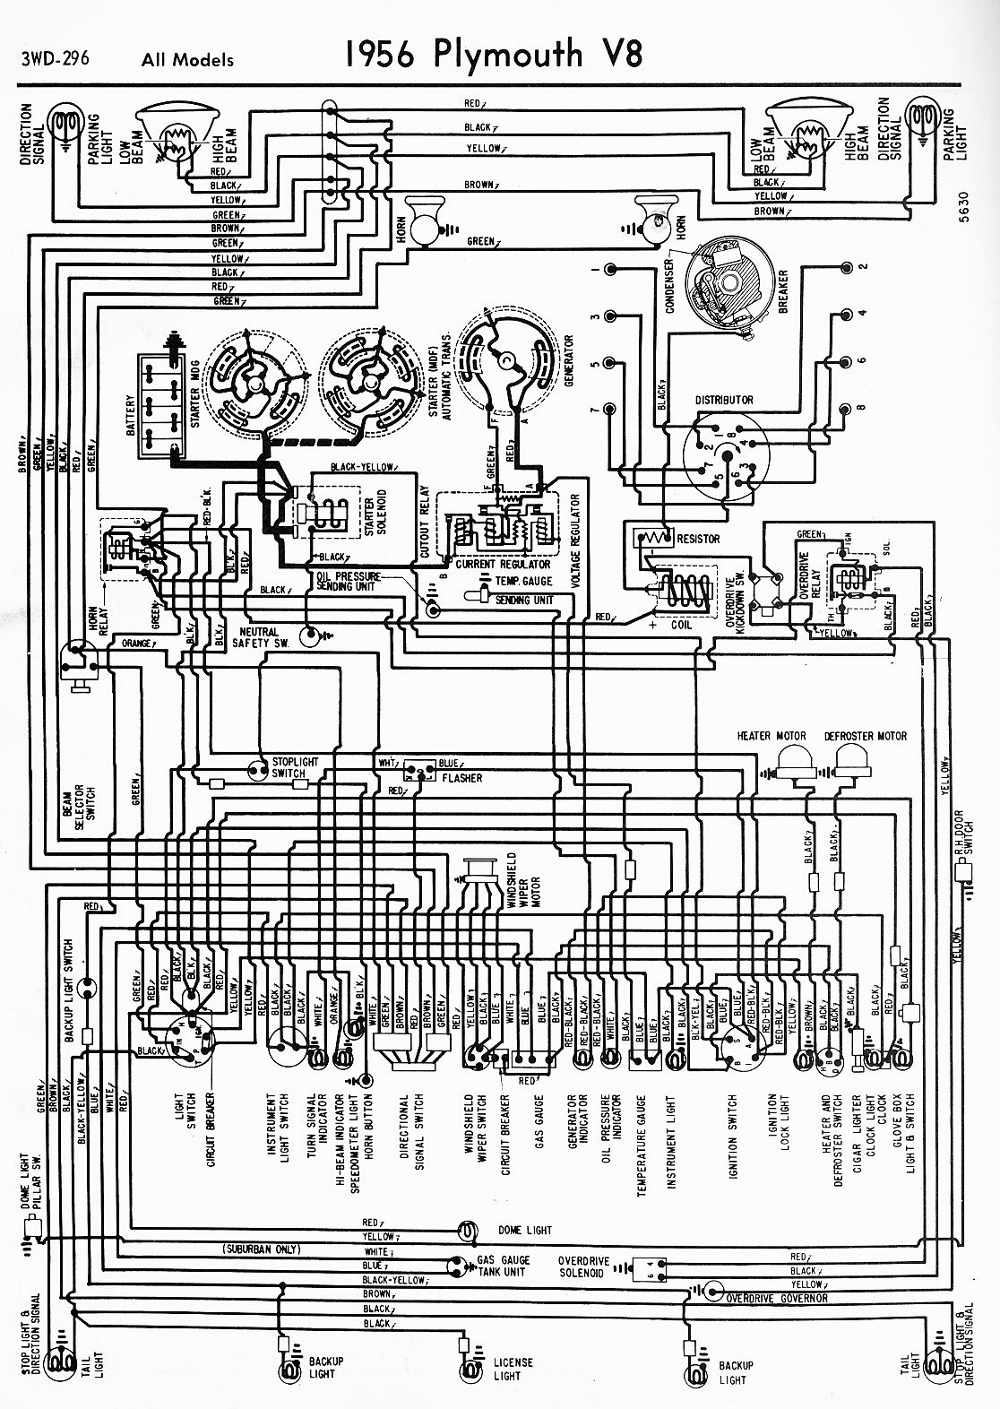 Vespa Wiring Diagram 1956 25 Images 84 Shovelhead Diy Plymouth V8 All Models Proa